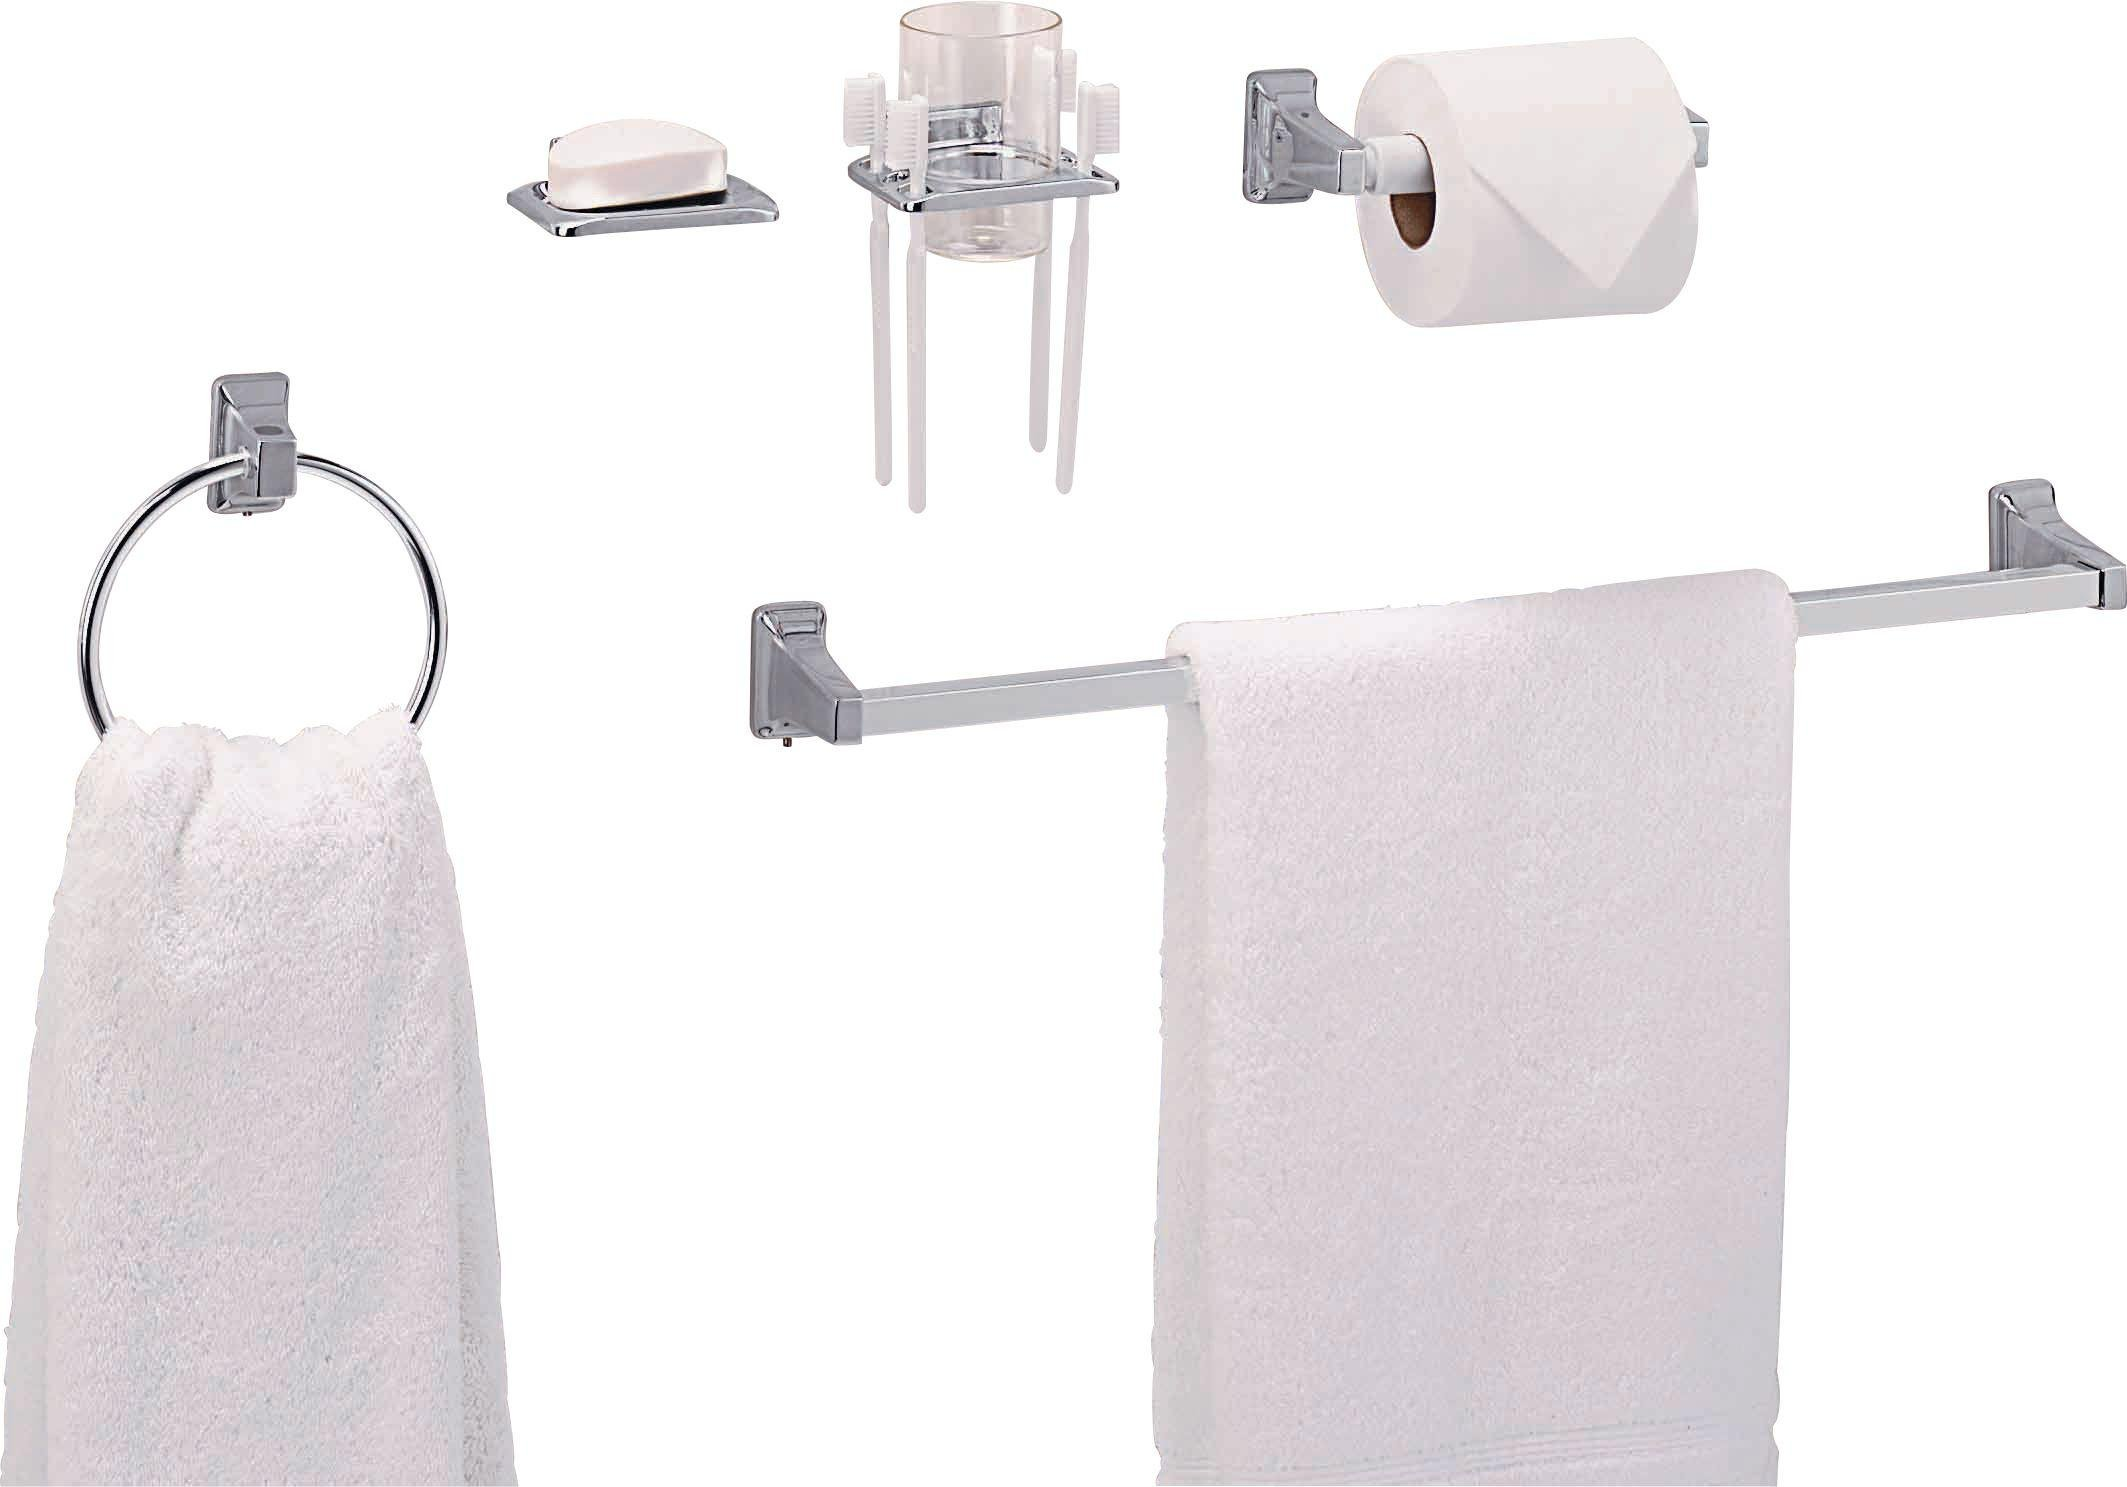 Toilet Accessoires Set : Piece chrome finish bathroom accessory set towel toothbrush